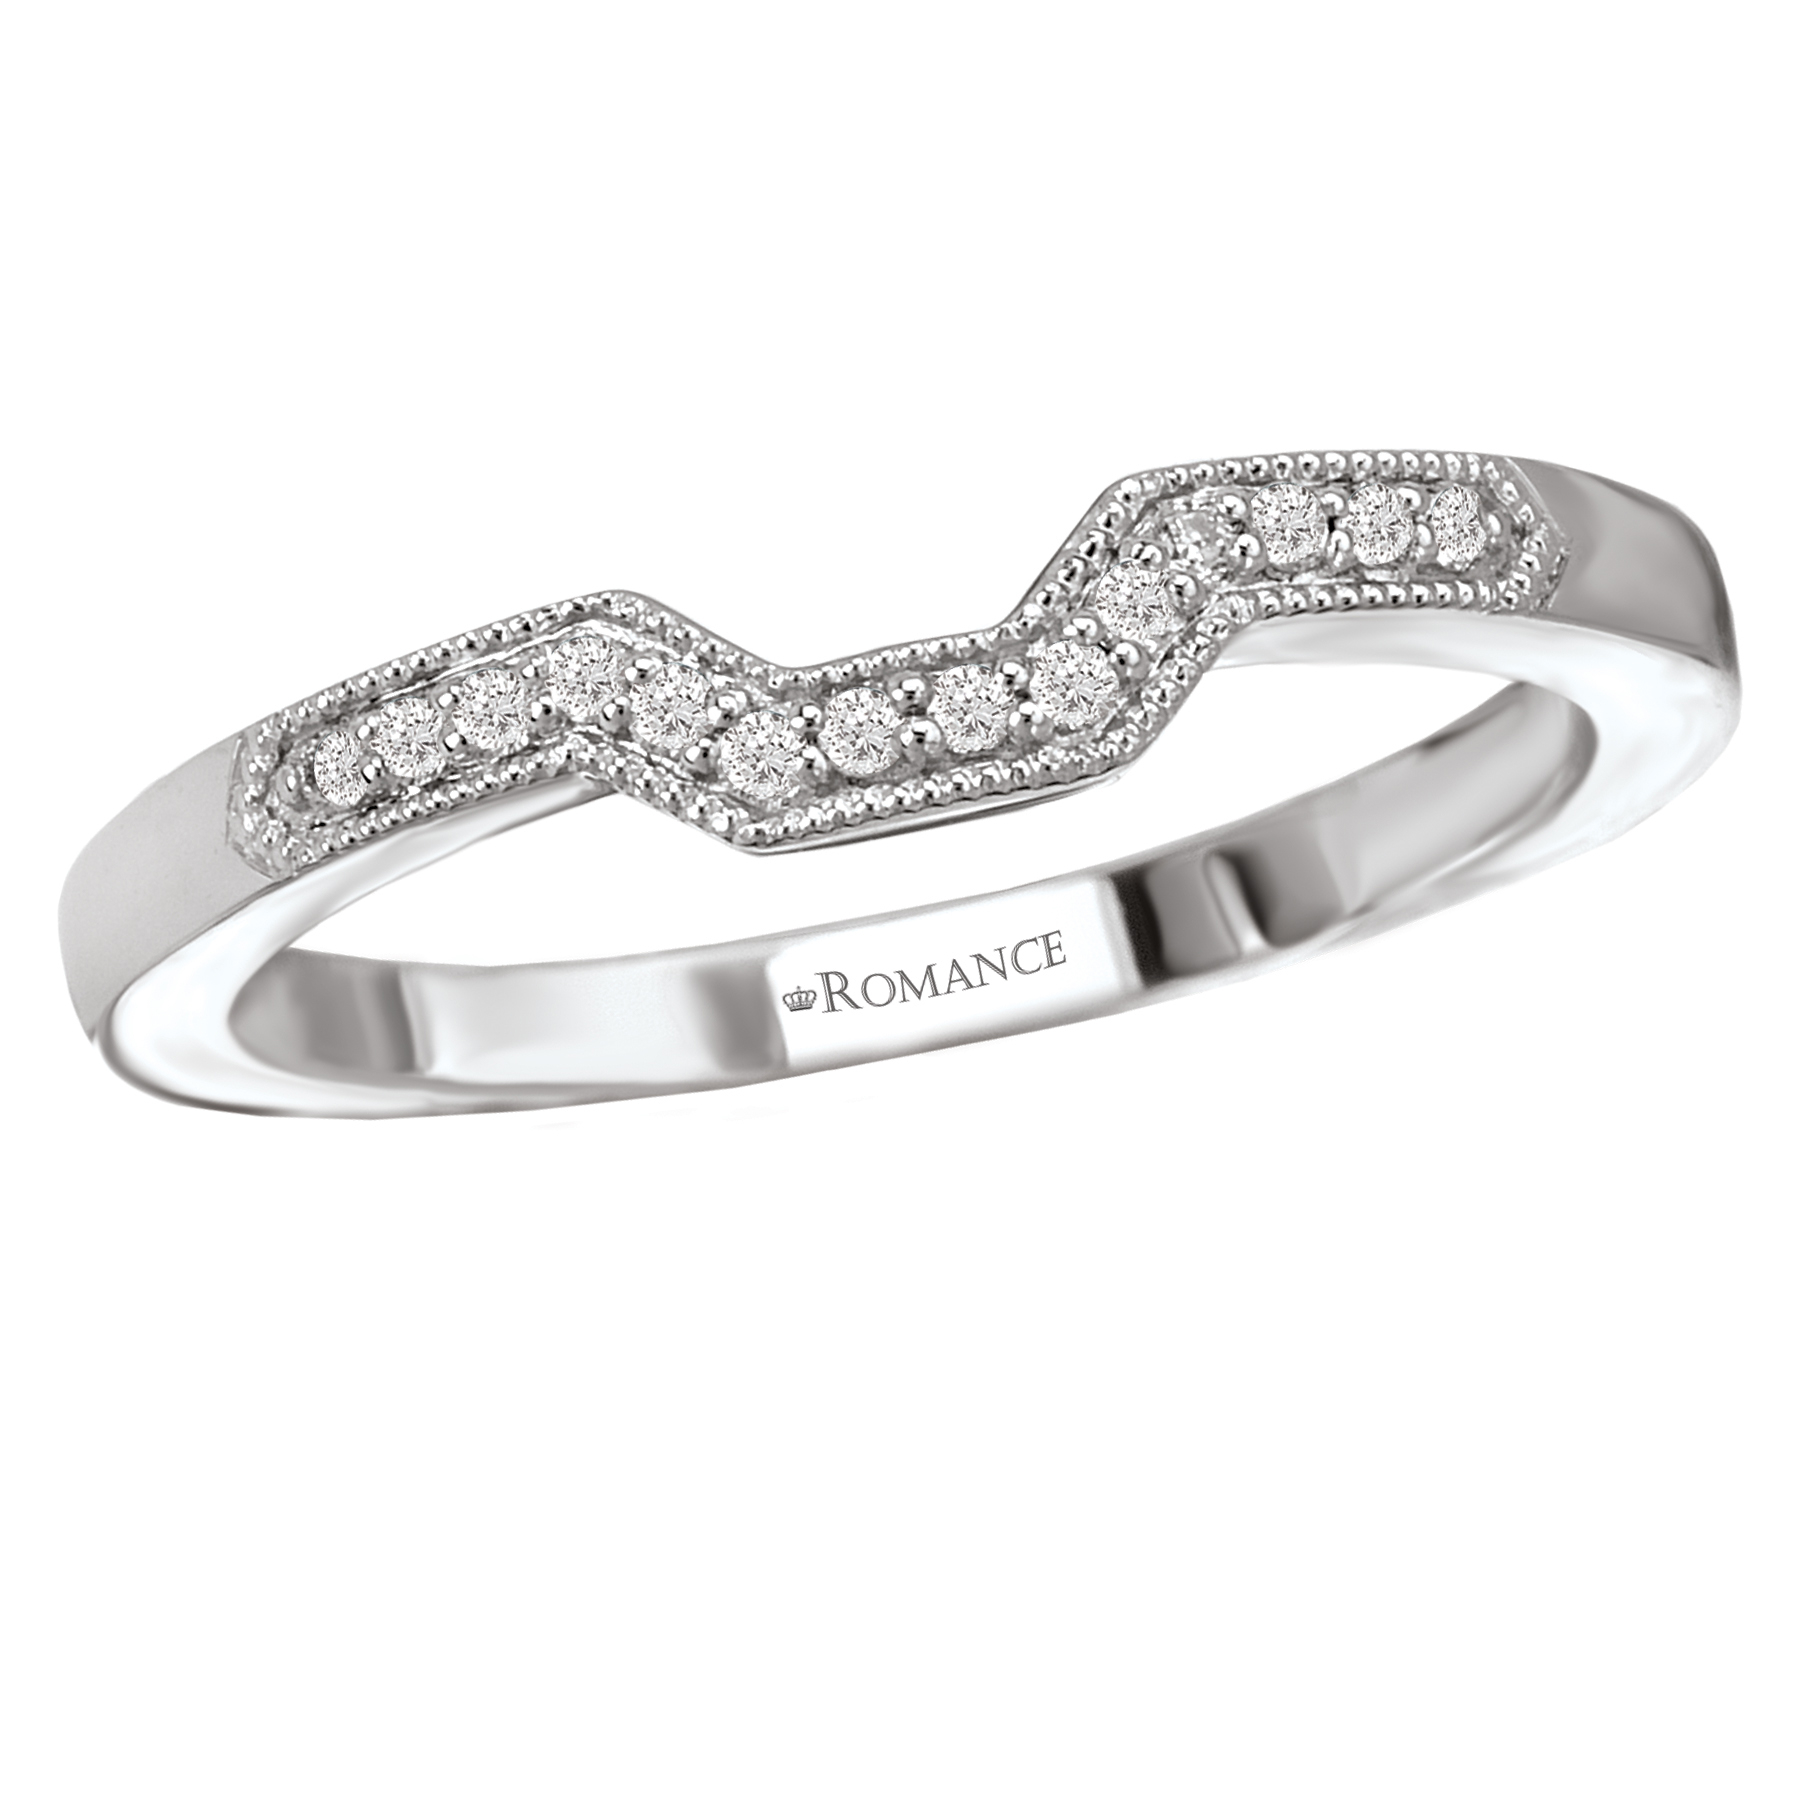 Romance Wedding Bands 117574-150W product image